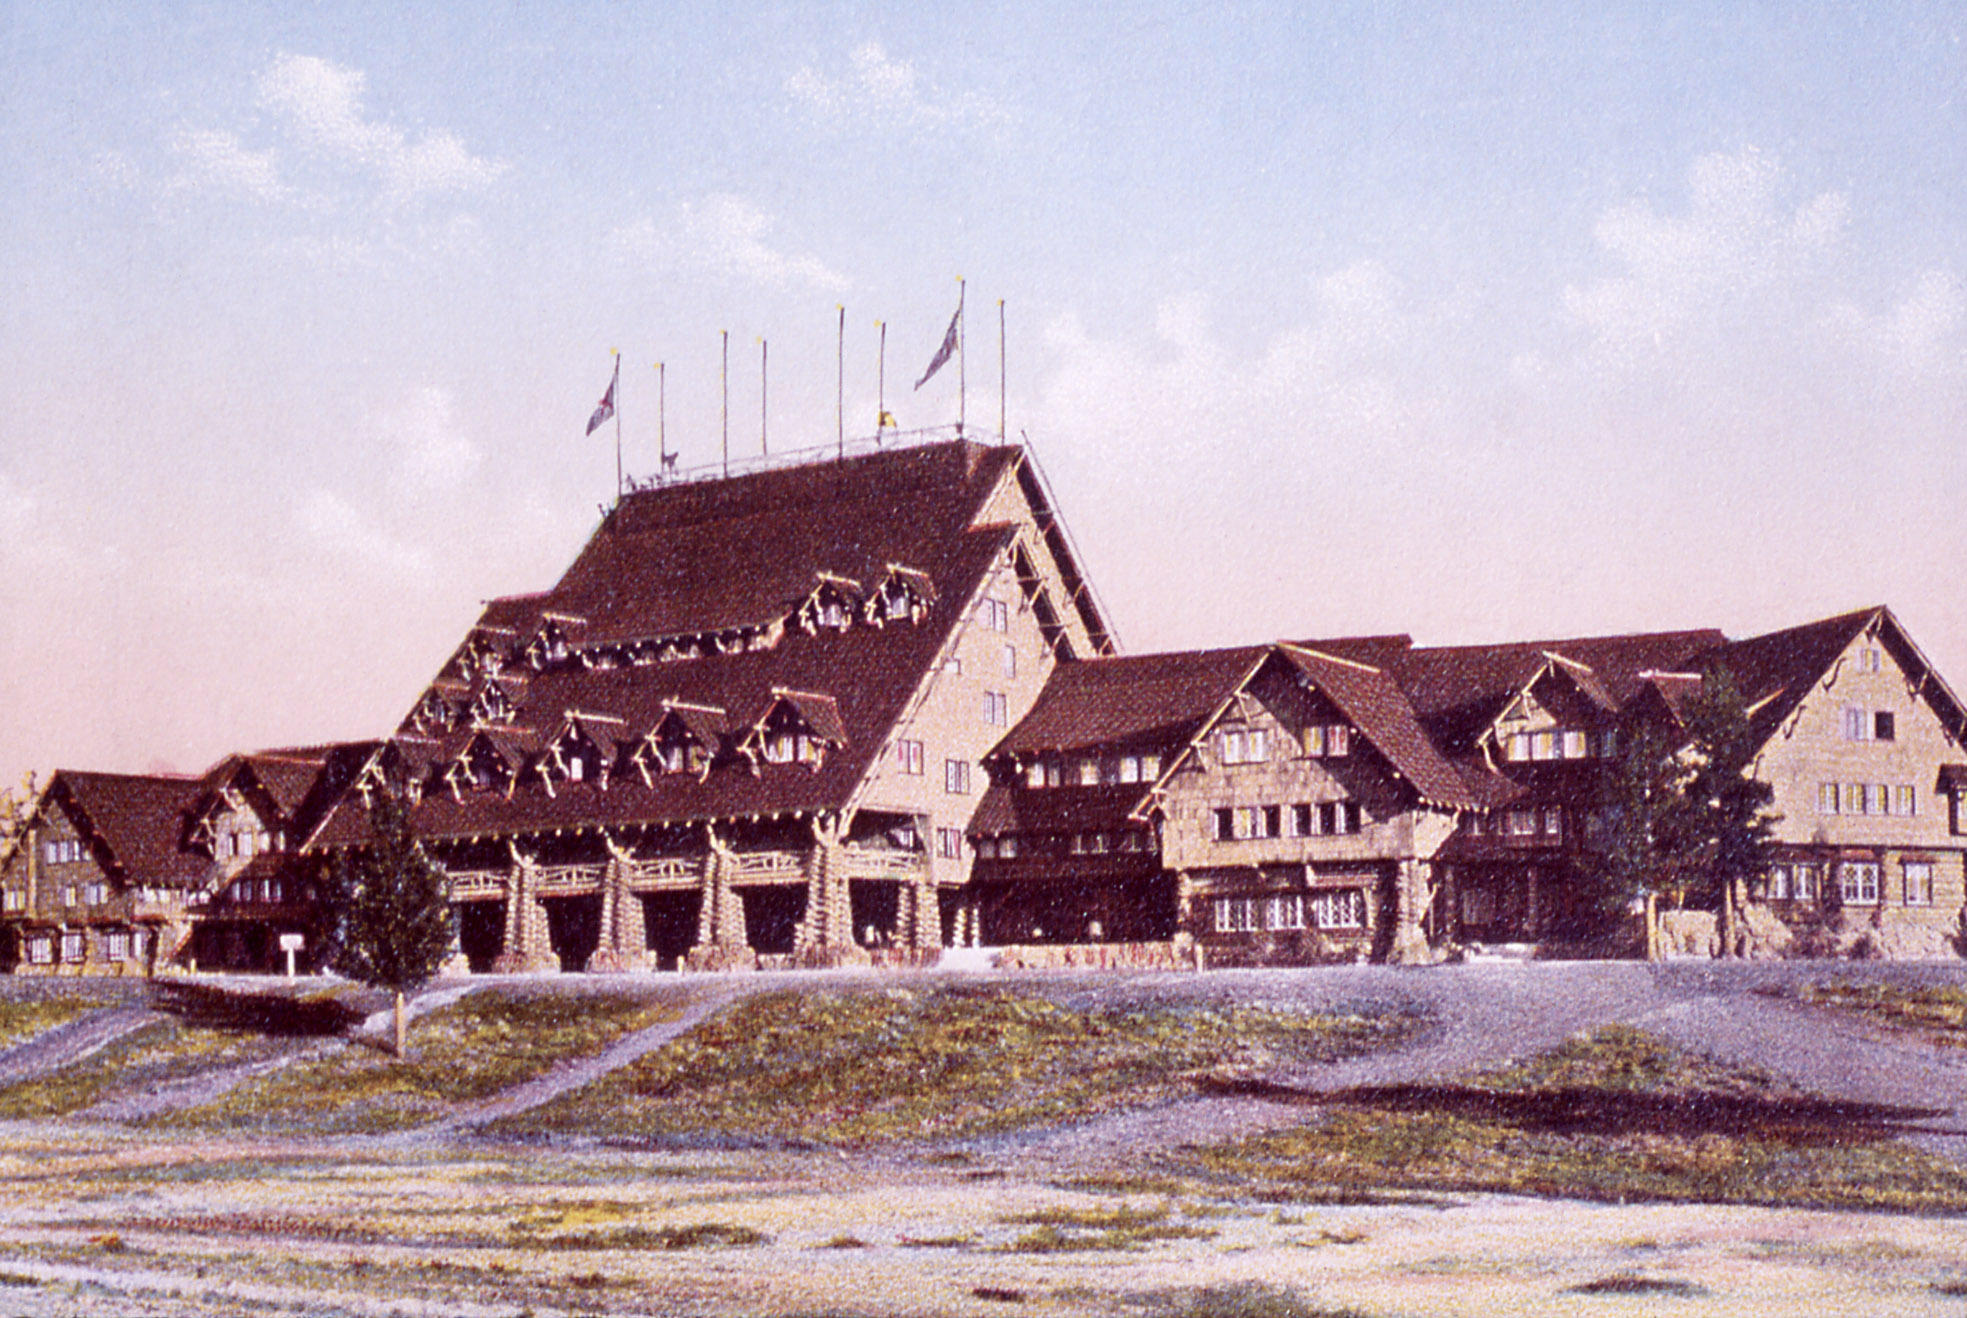 The Inn in 1967